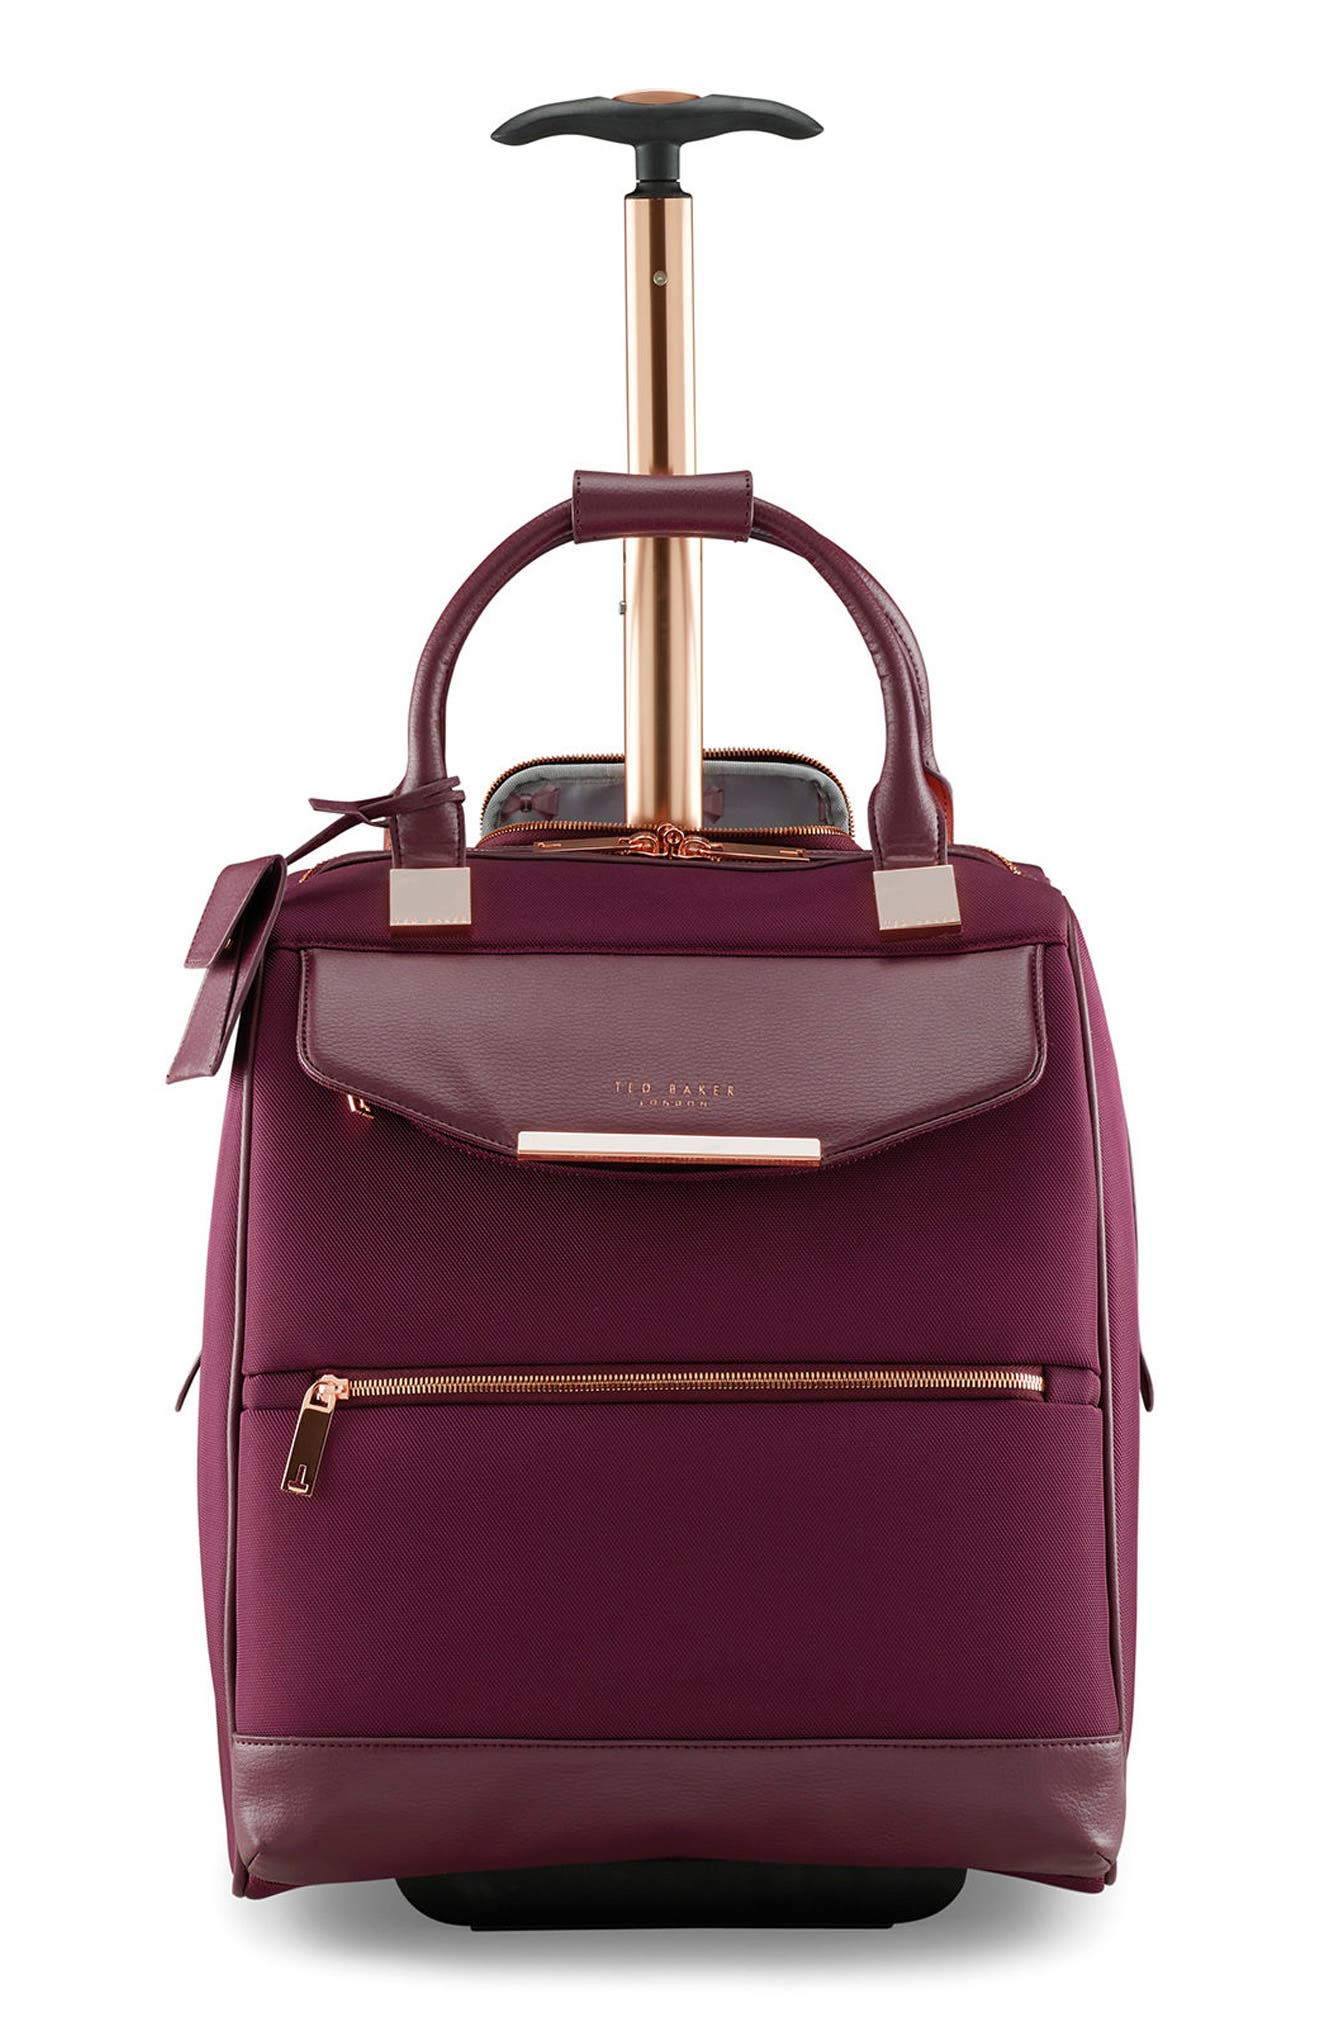 Ted Baker London Business Trolley Case